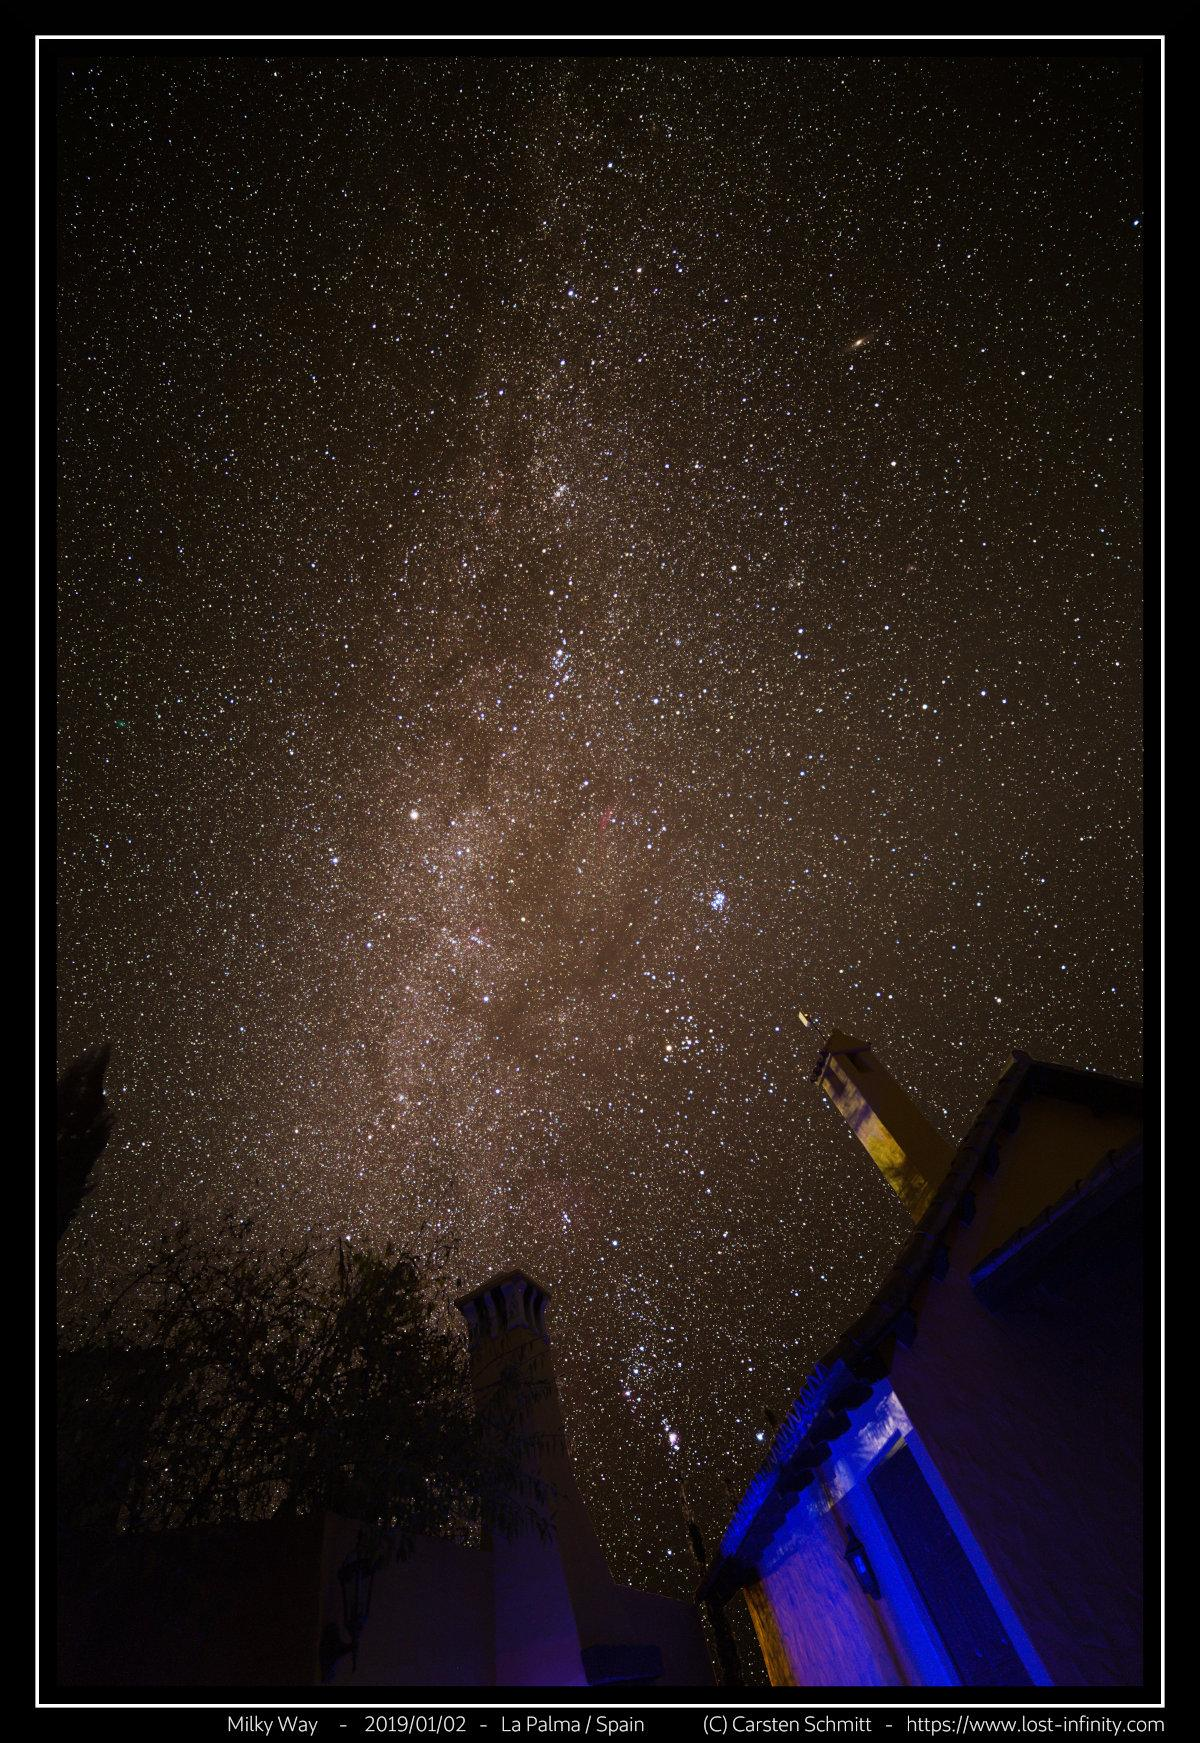 Milky Way - 2019/02/01